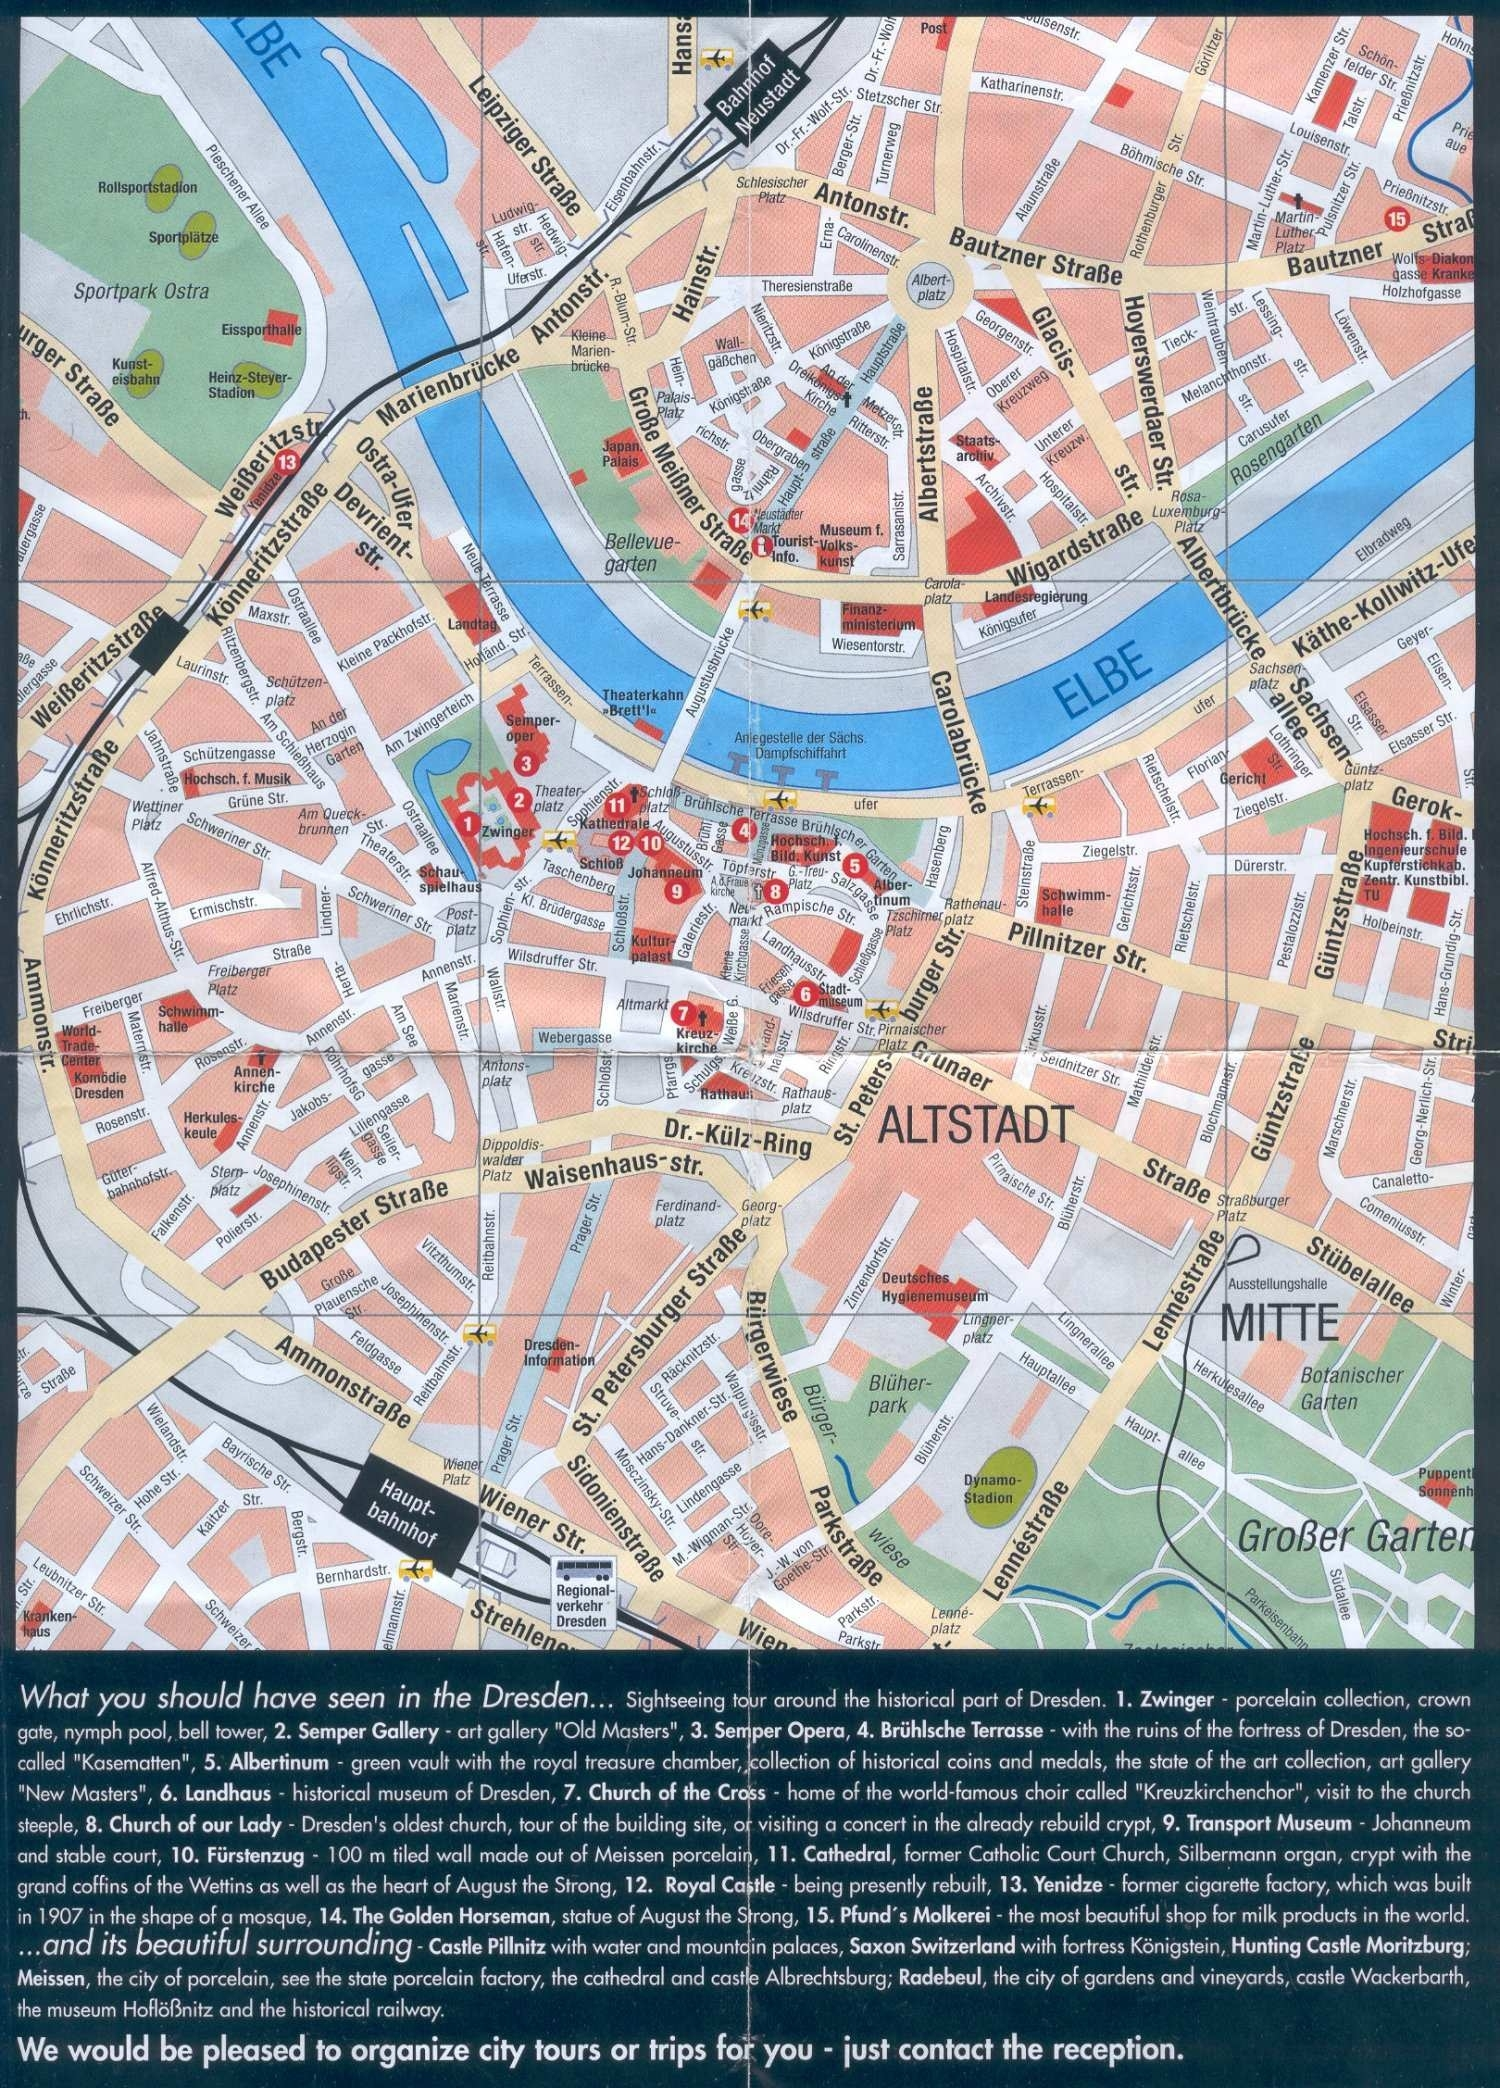 Large Dresden Maps For Free Download And Print | High-Resolution And with regard to Dresden Germany City Map